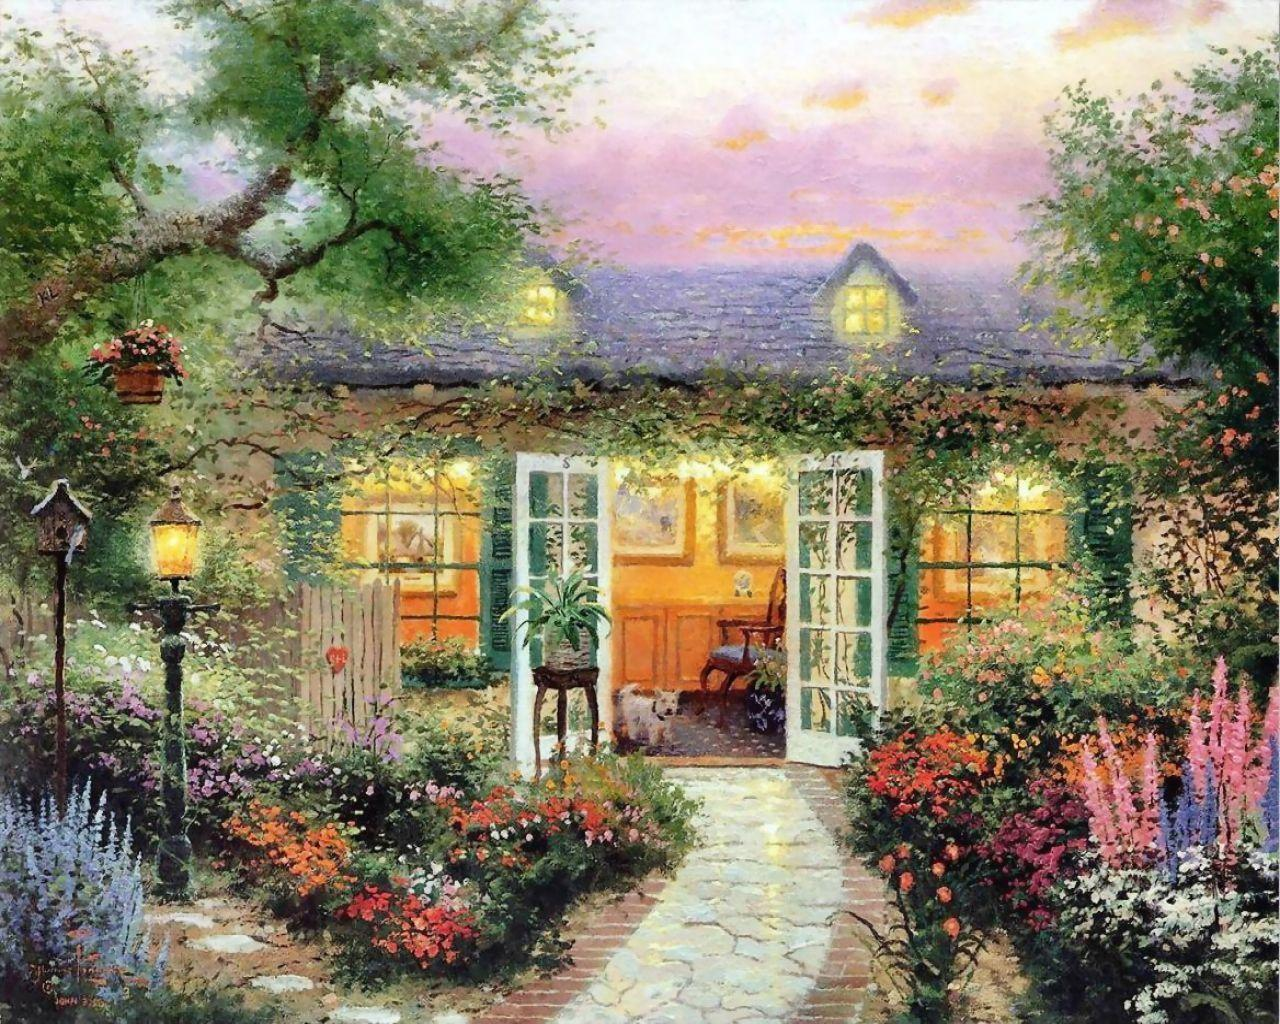 kinkade summer wallpaper drawing - photo #31